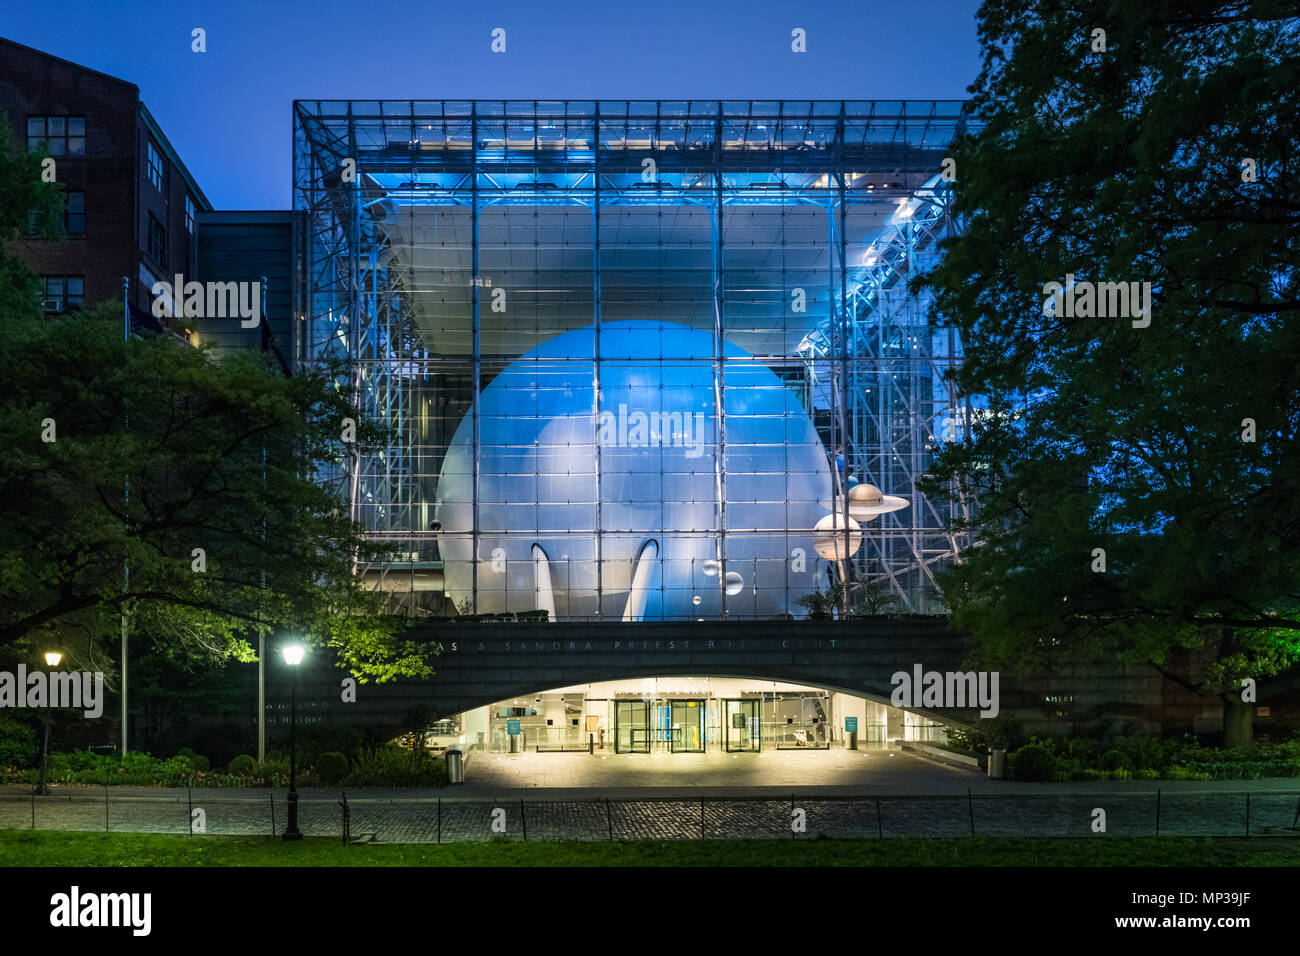 The Hayden Planetarium near Central Park in New York City, USA. - Stock Image